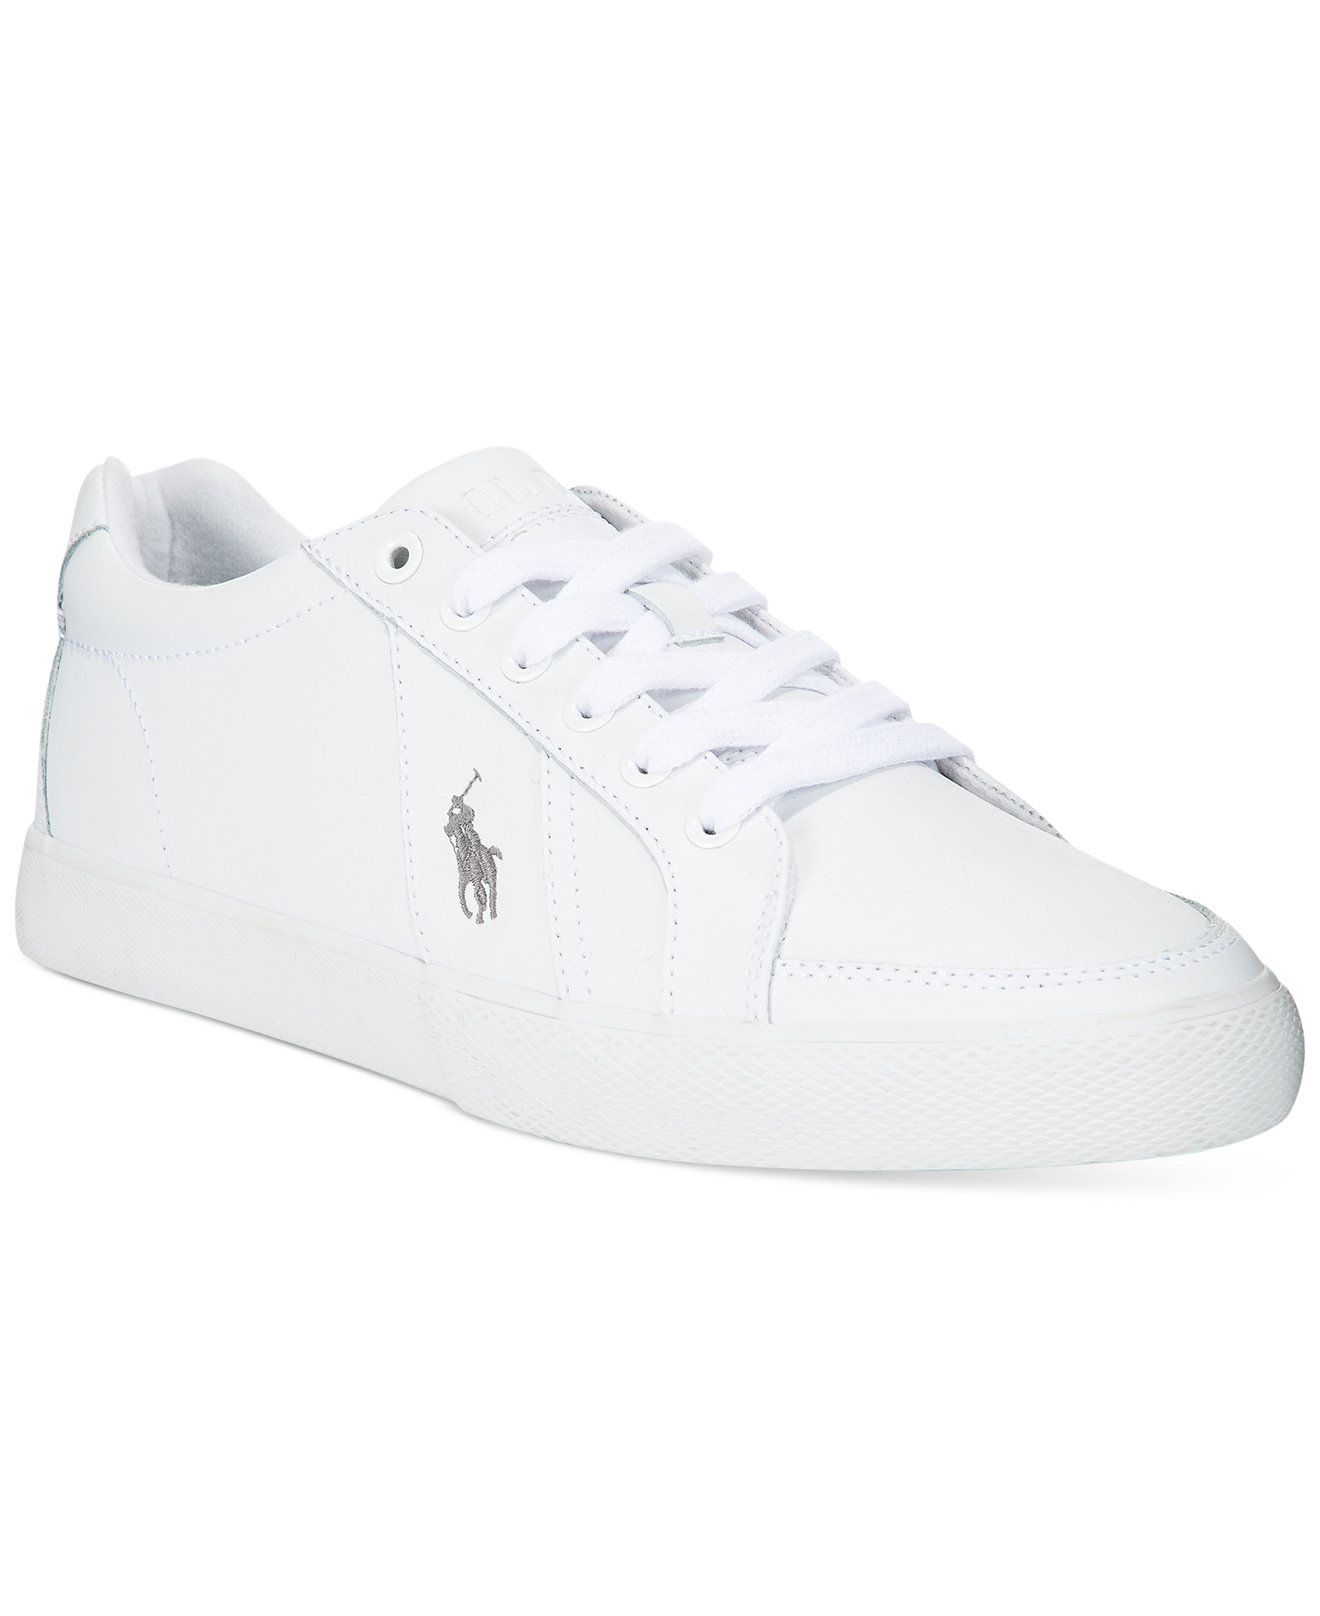 43b6b18aa2c6ce Polo Ralph Lauren Hugh Logo Sneakers - Polo Ralph Lauren - Men - Macy s